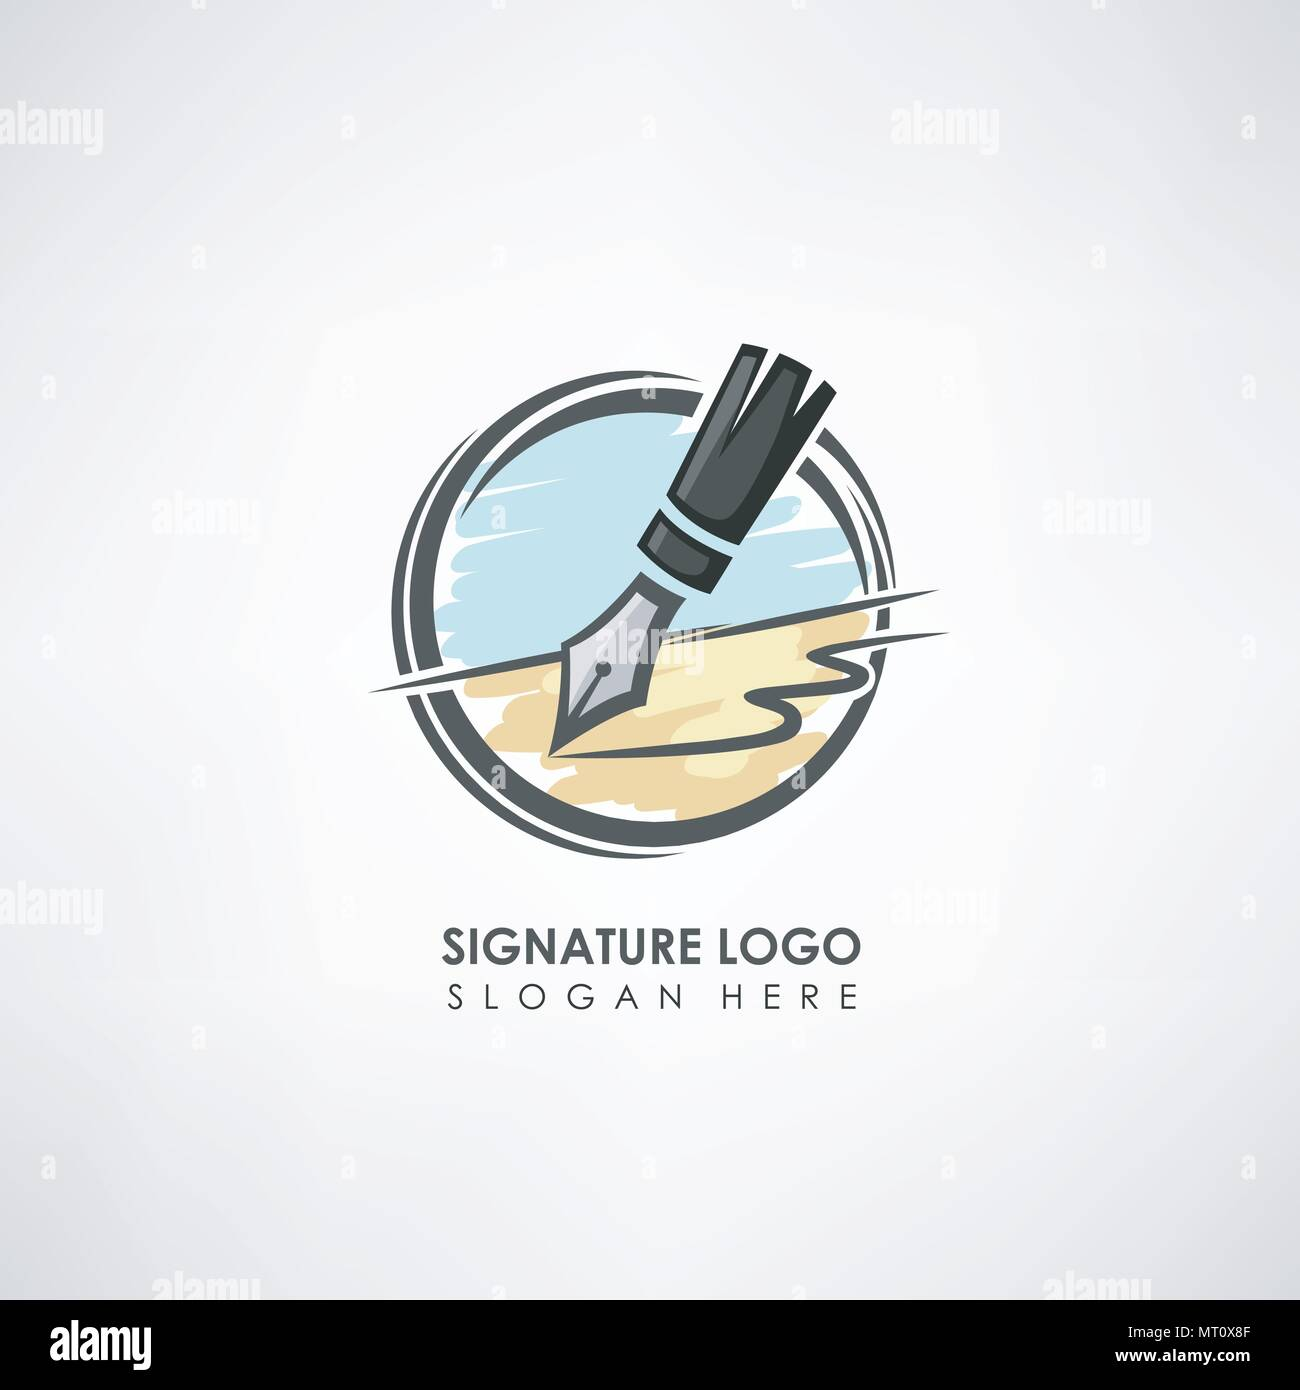 Signature Concept Logo Template With Pen Drawing Label Template For